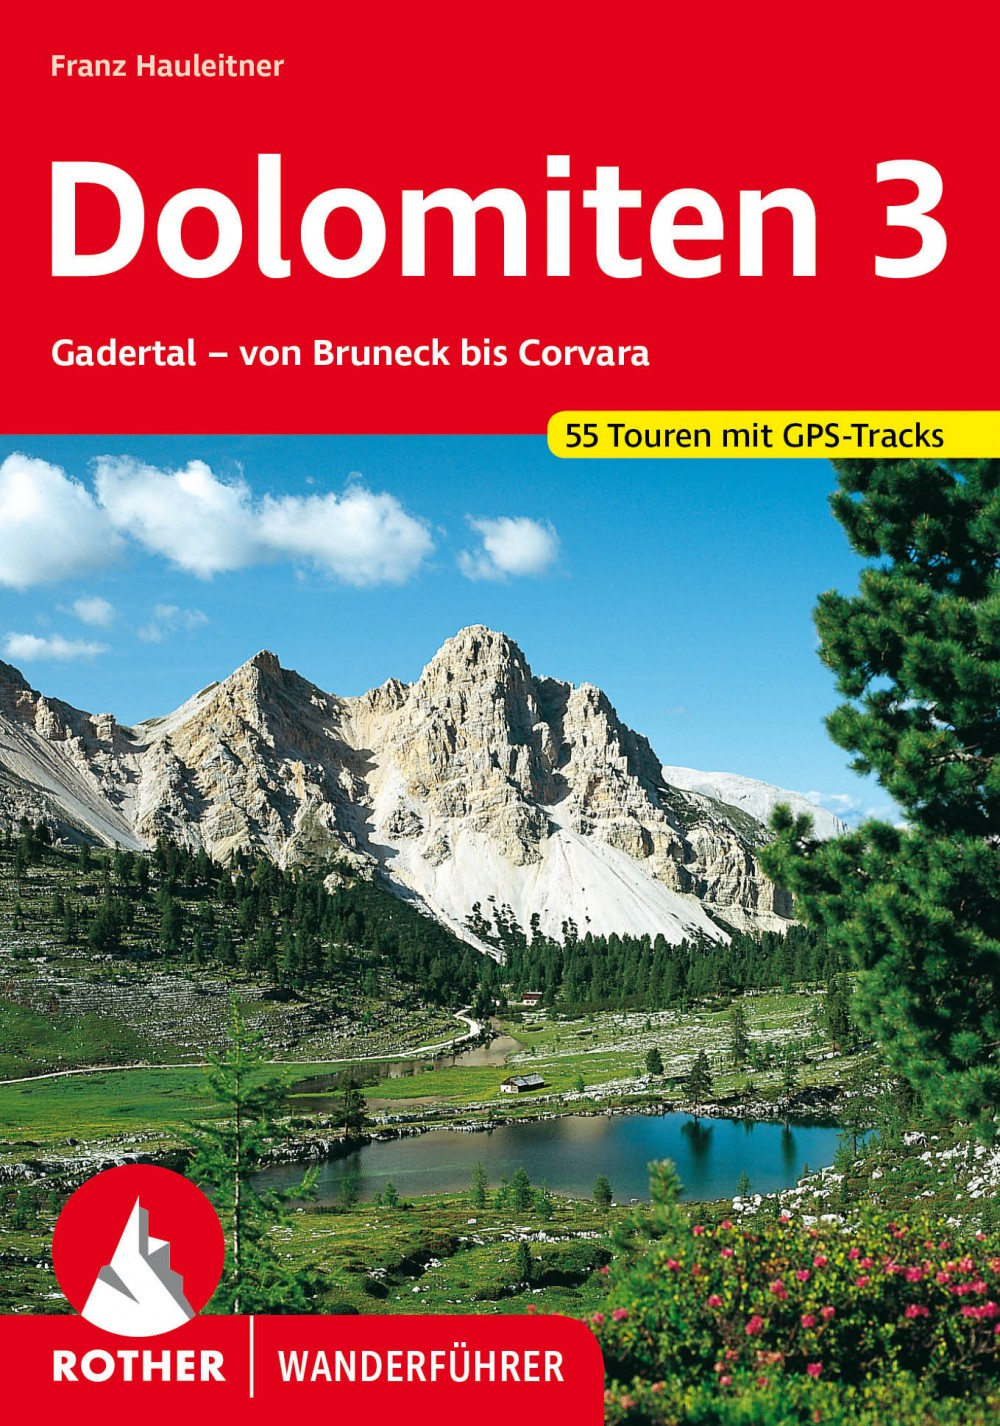 Dolomiten 3. (Gadertal - Von Bruneck bis Corvara) - RO 4060